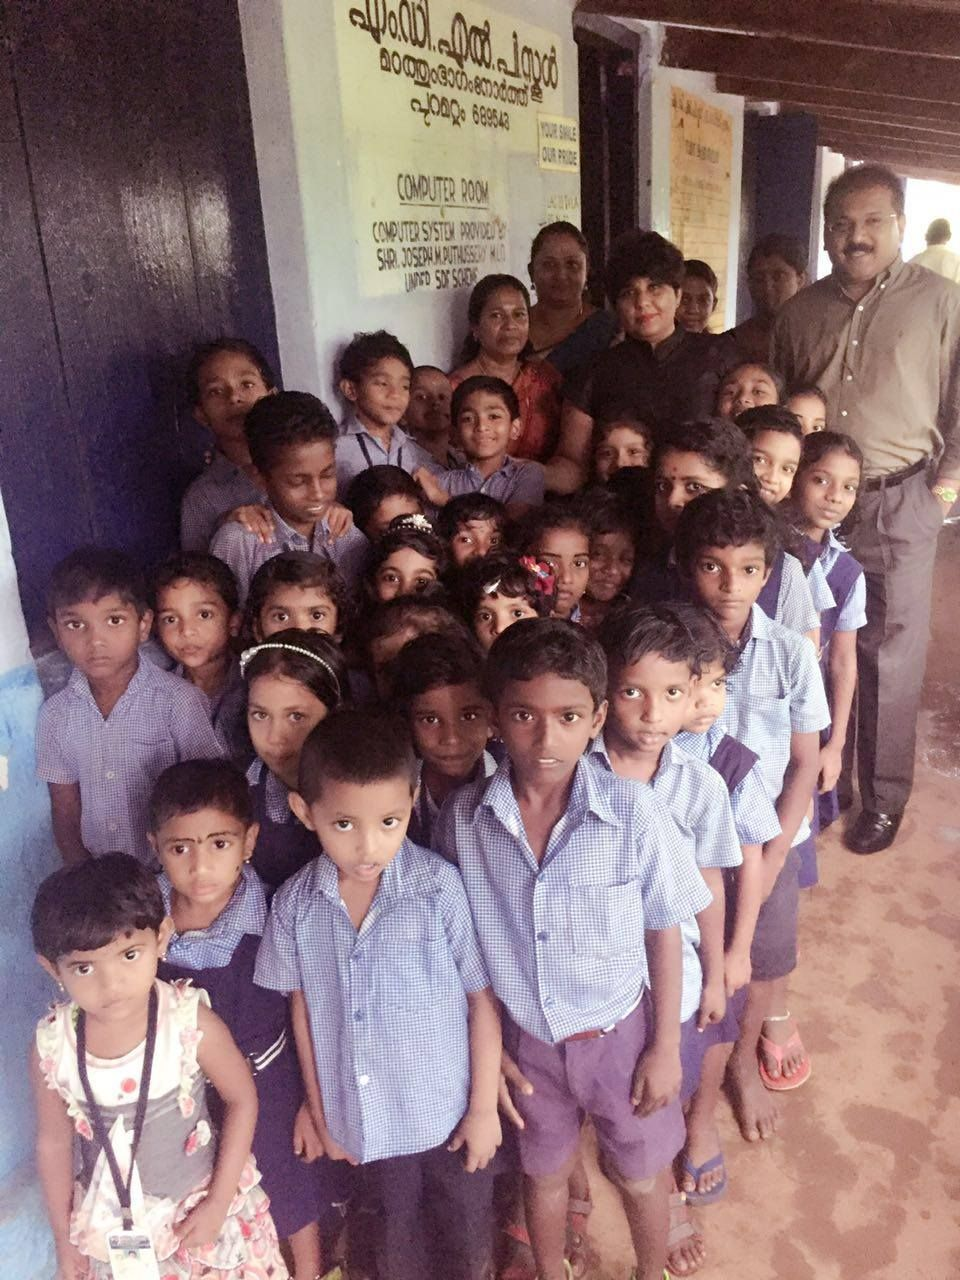 Lovedale foundation provides free education including